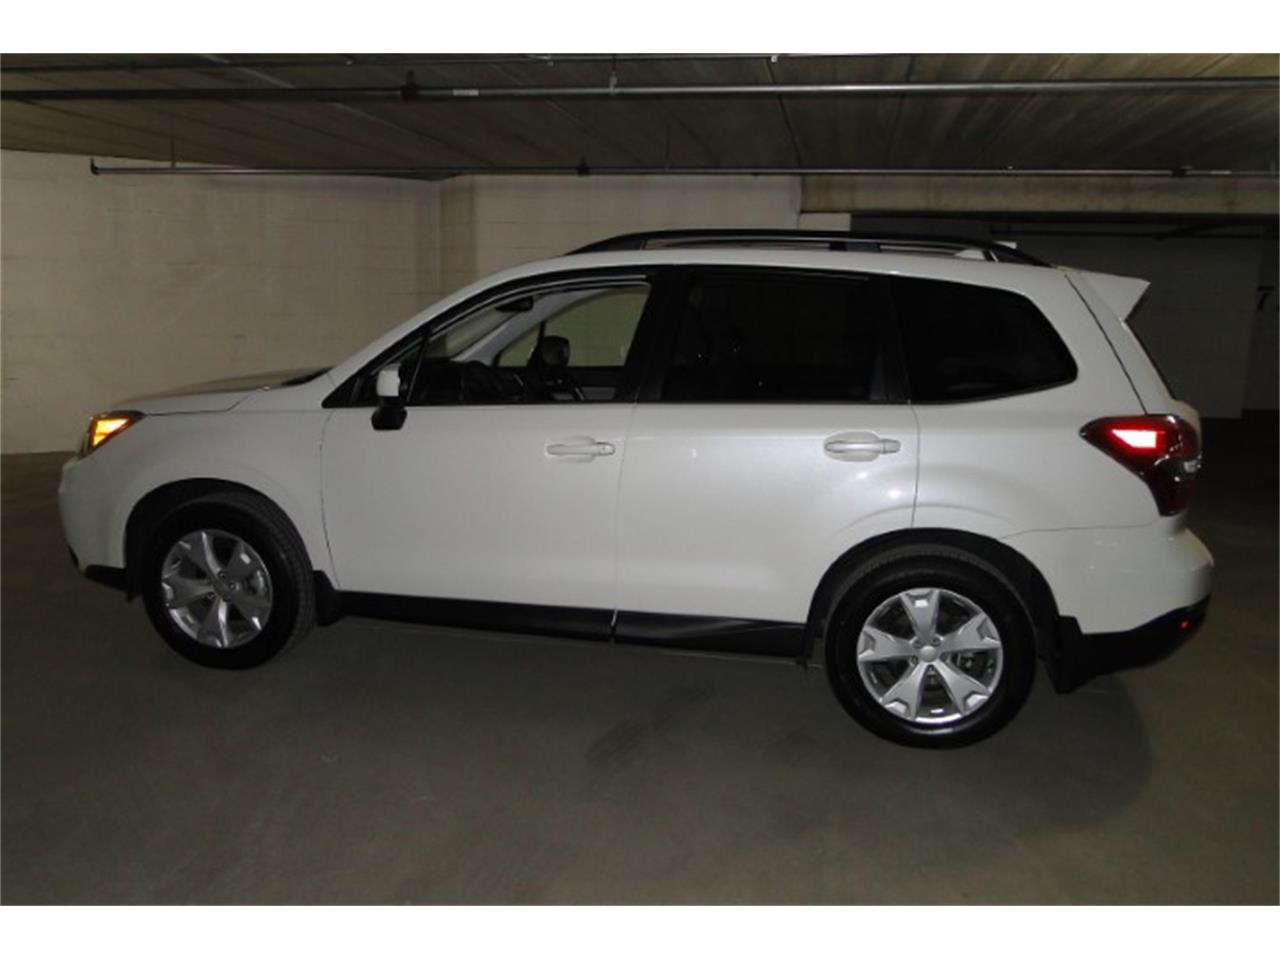 Large Picture of '16 Subaru Forester - $23,900.00 - O7AC